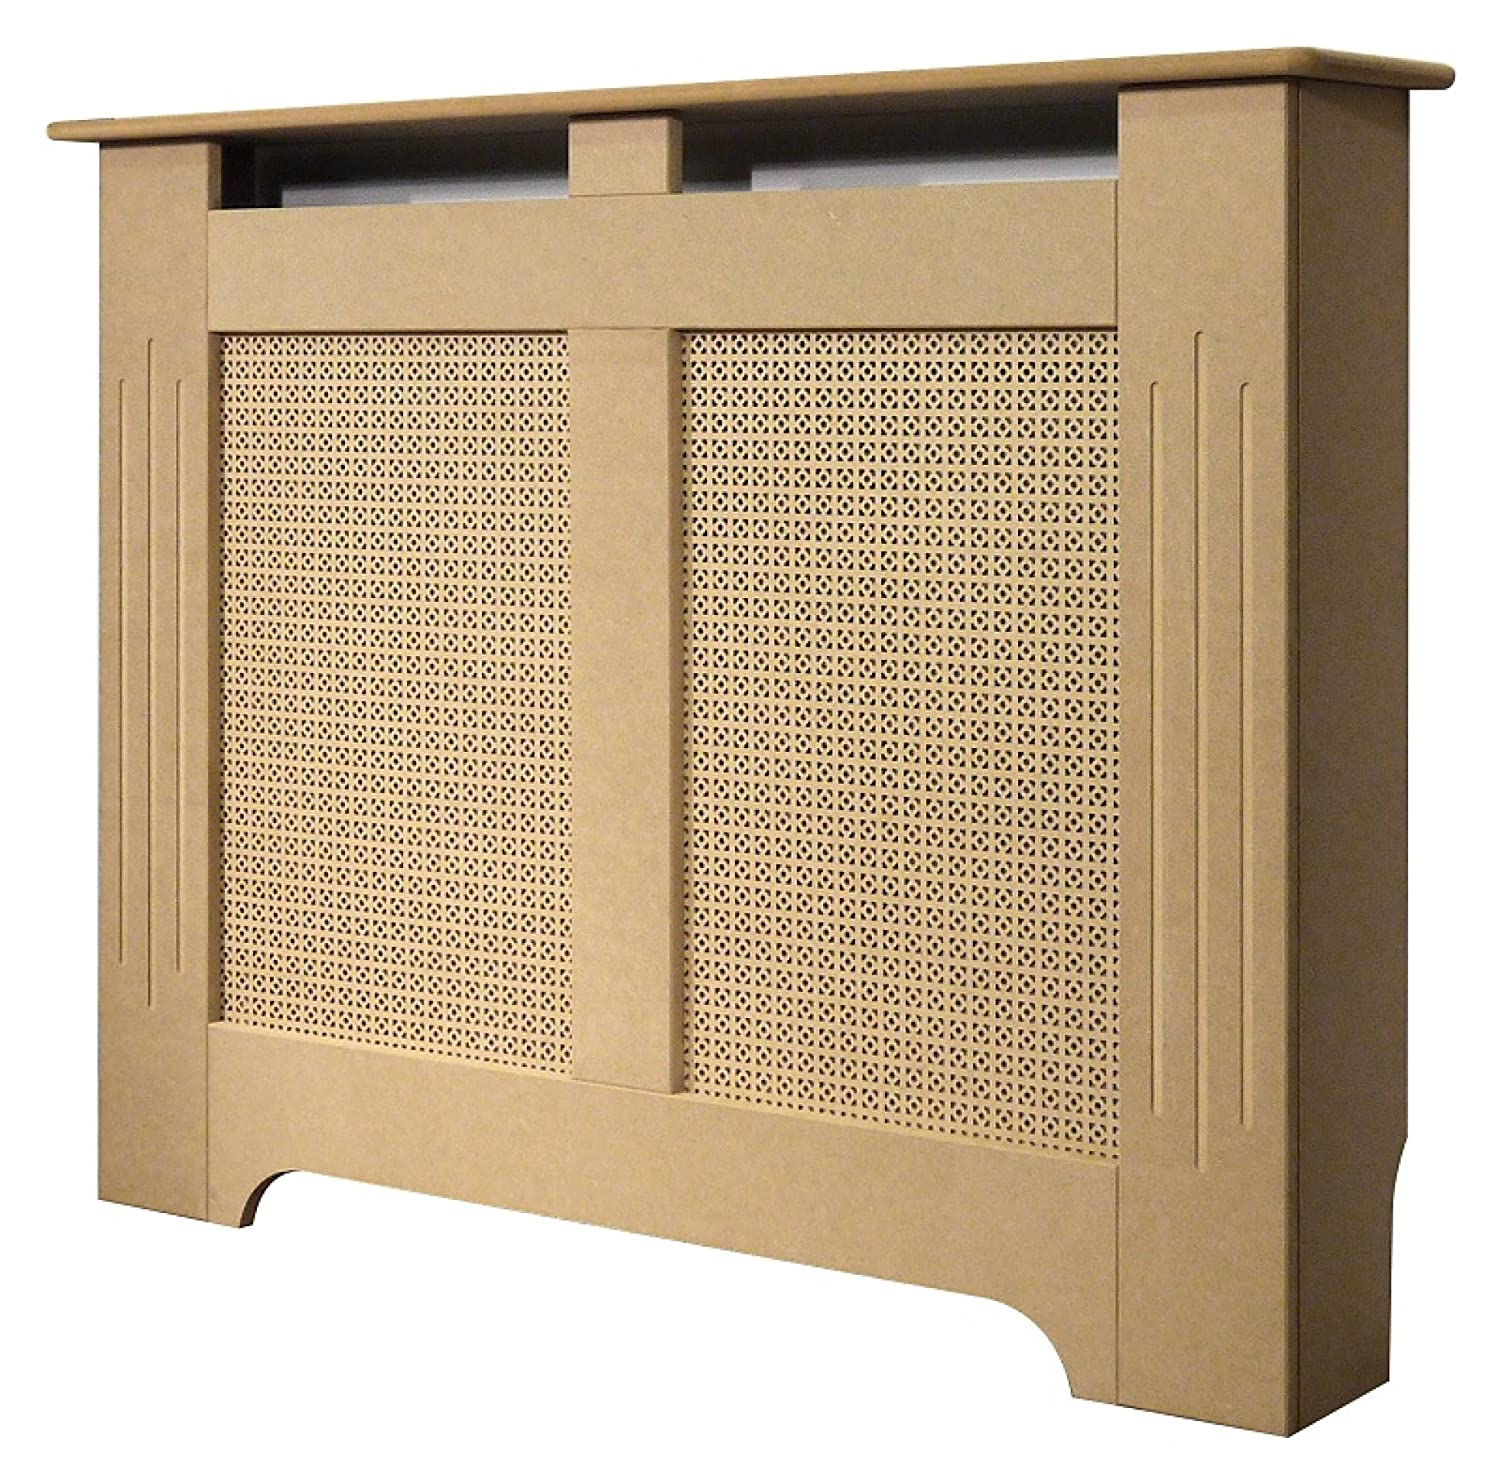 Adam The Easy-Paint Radiator Cover, 1200mm